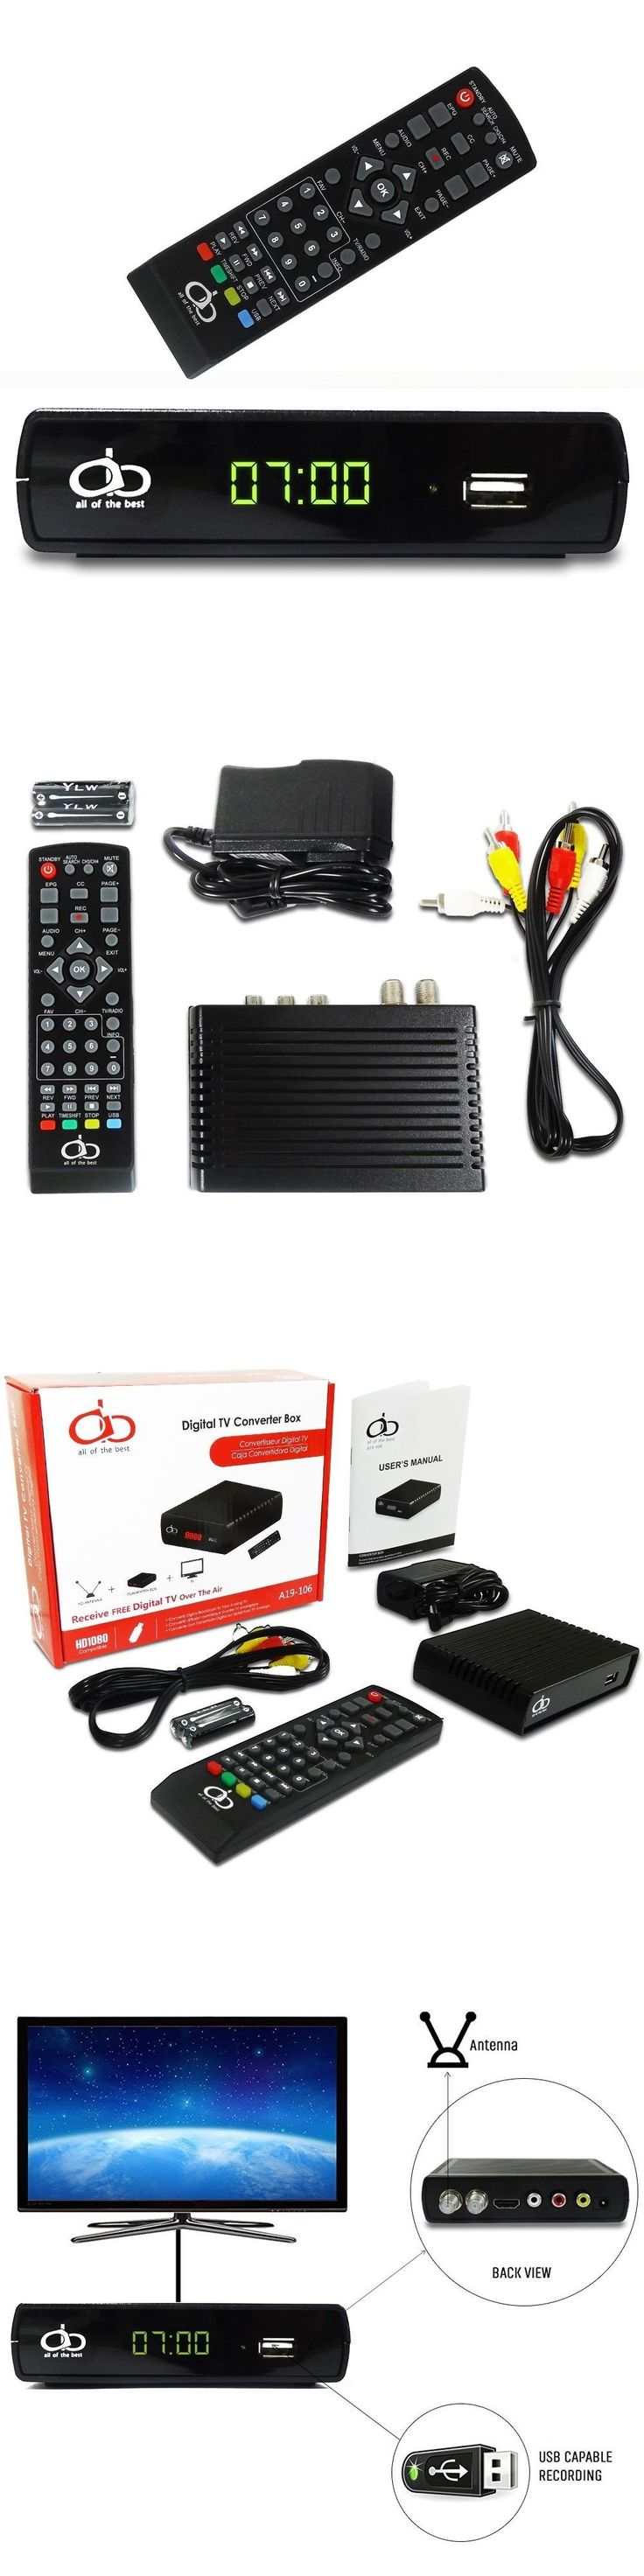 Other TV Video and Audio Accs: Digital Tv Converter Box P19-106 Supports Full Hd Usb With Remote Control And Re -> BUY IT NOW ONLY: $64.3 on eBay!